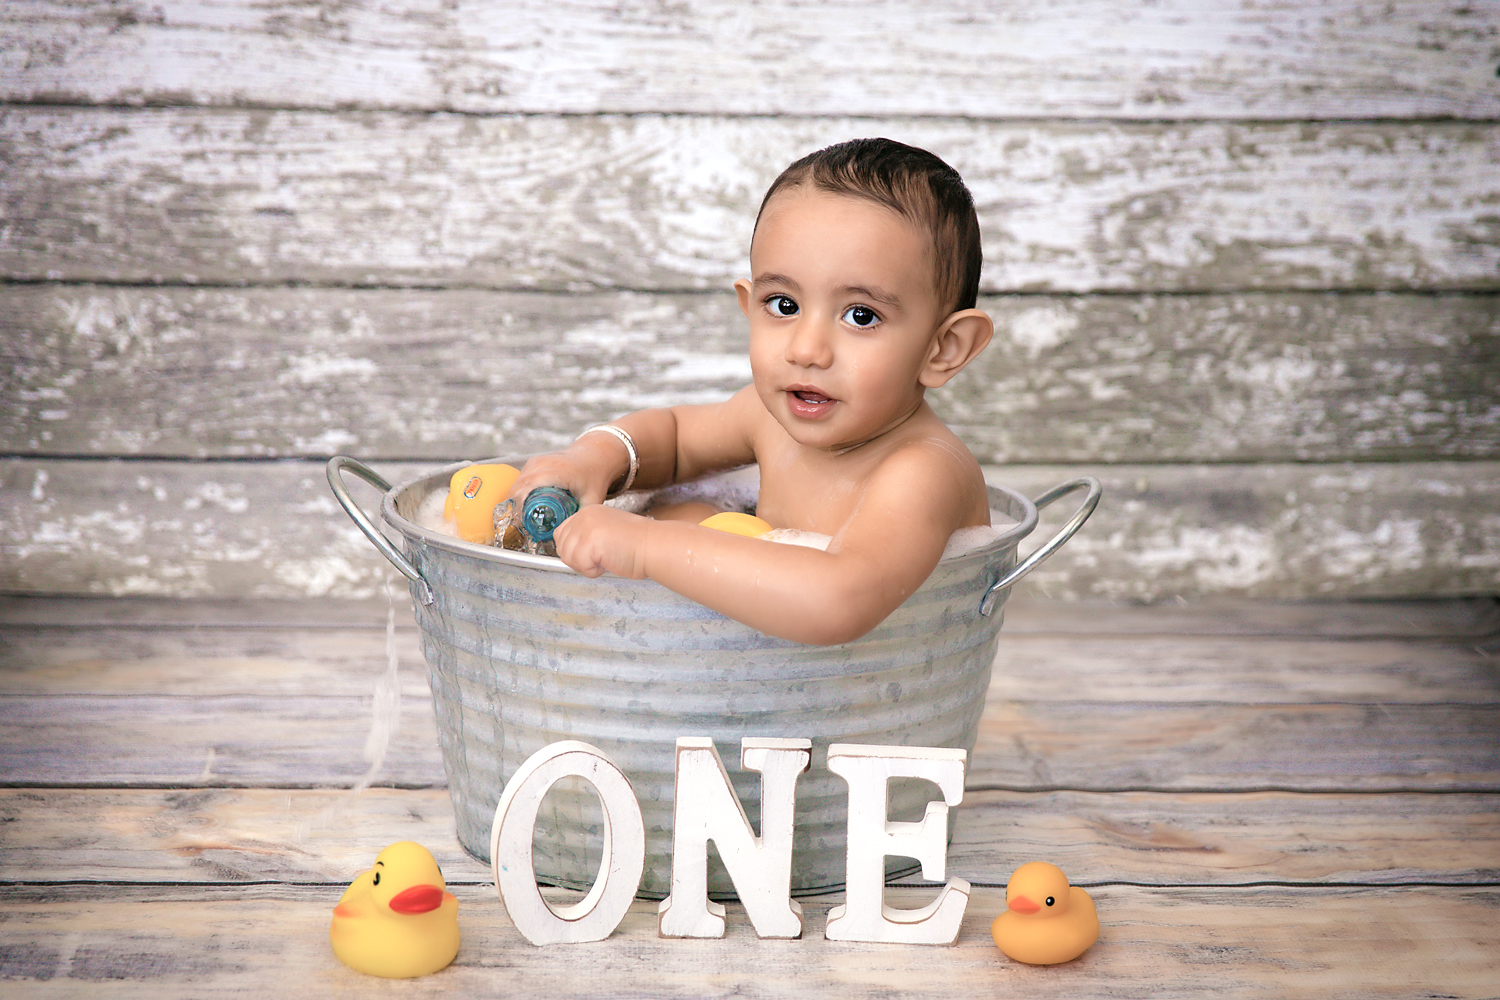 A little boy sitting in a tub and playing with rubber ducks. Smash and Splash photoshoot in Calgary, Alberta, Canada.